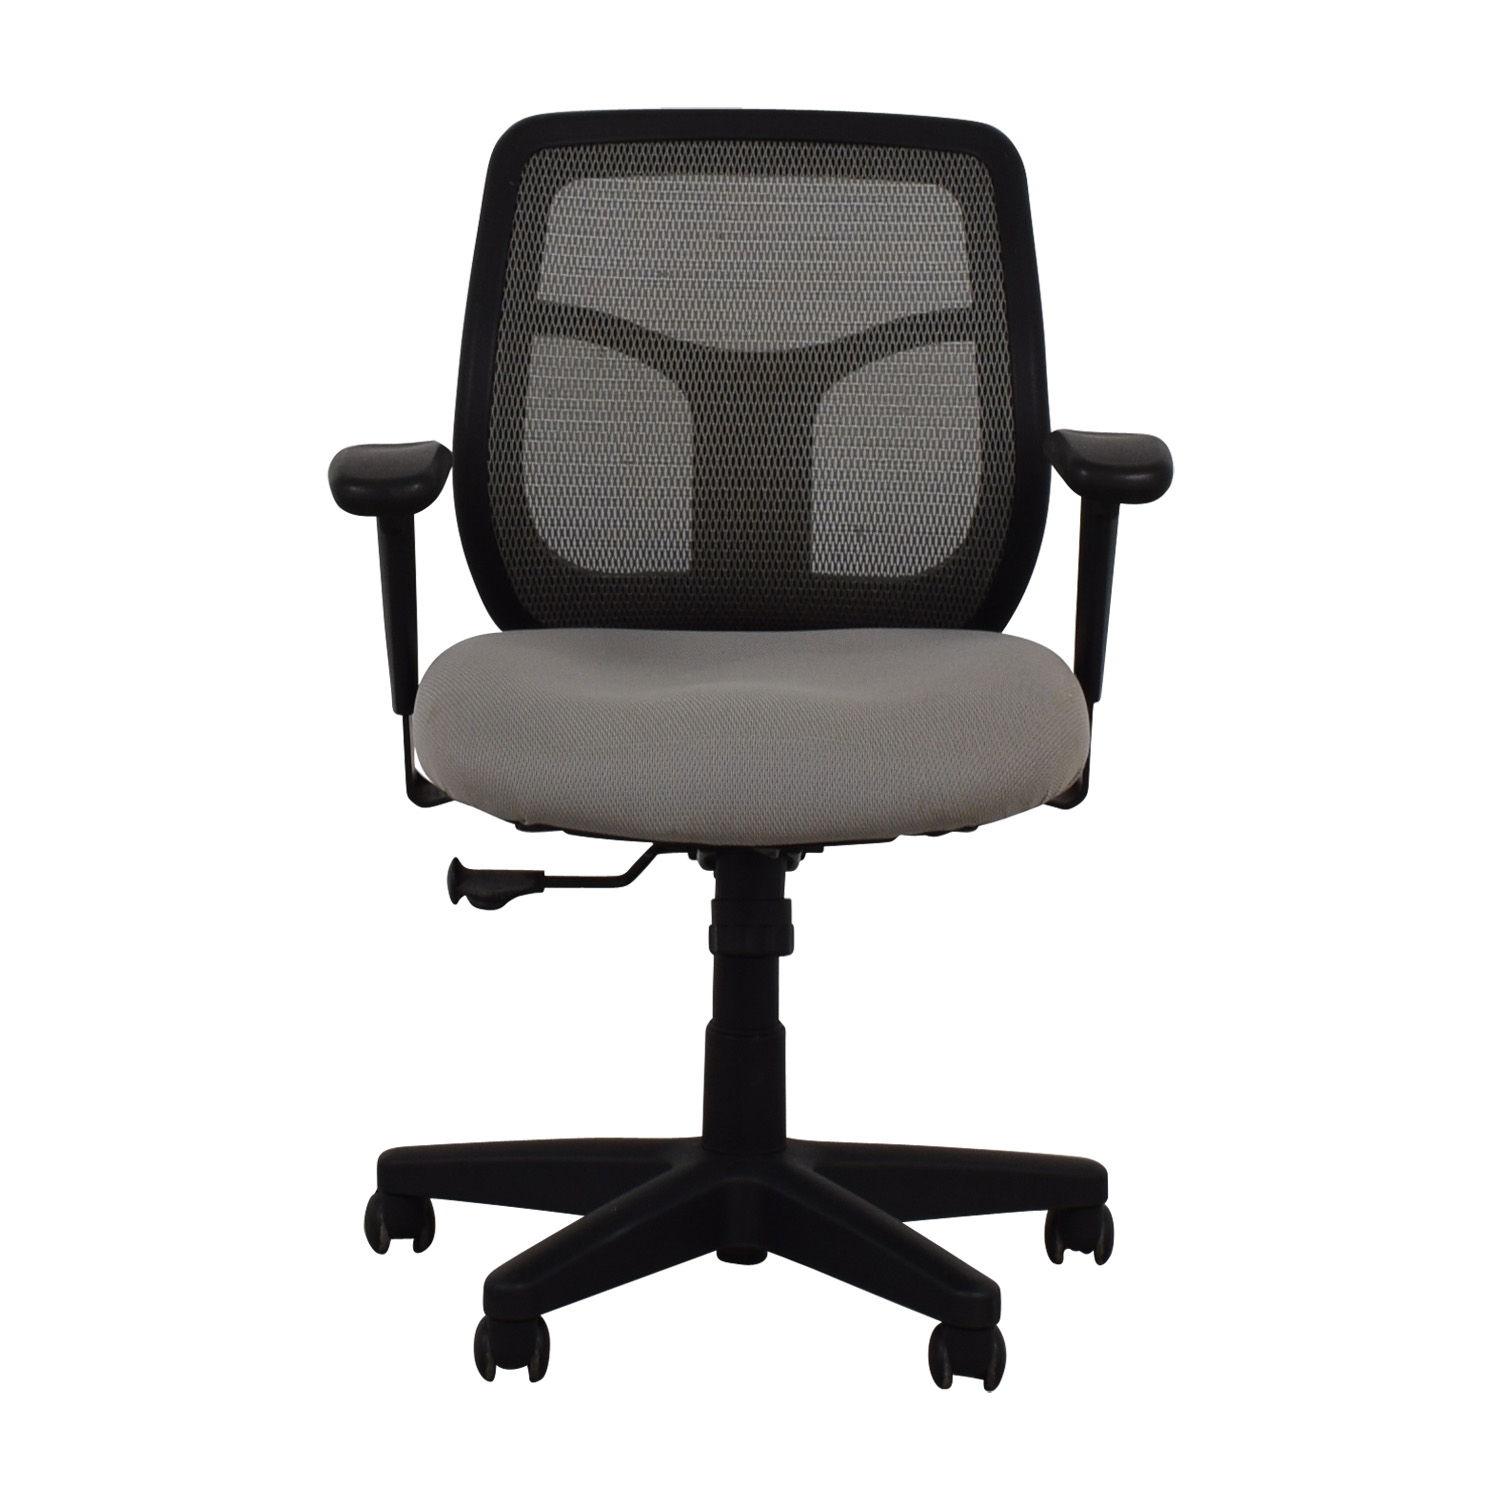 Grey and Black Computer Chair on Casters sale